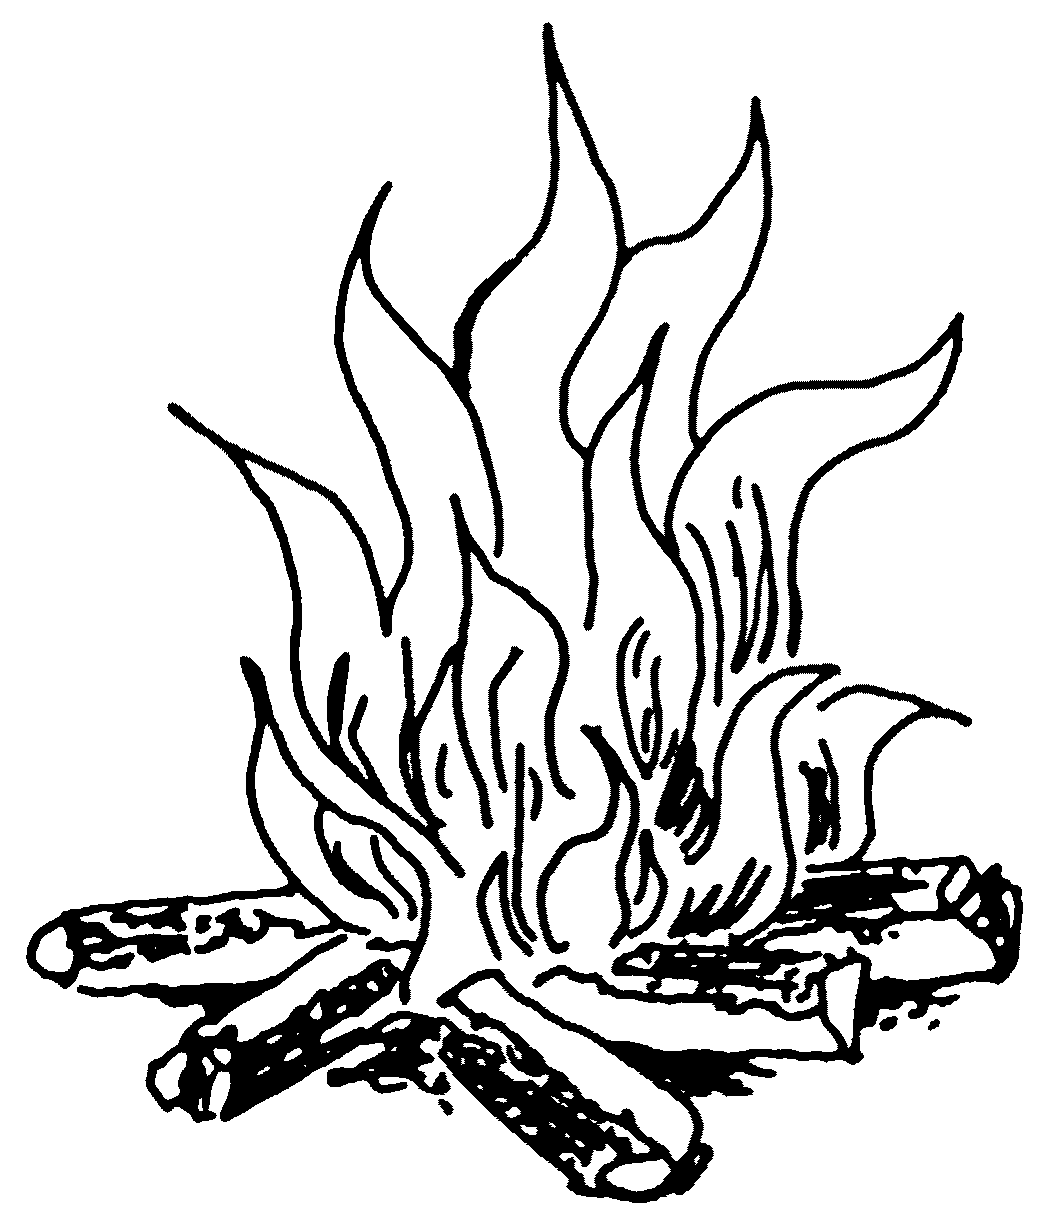 Fire Flames Black And White Clipart Panda